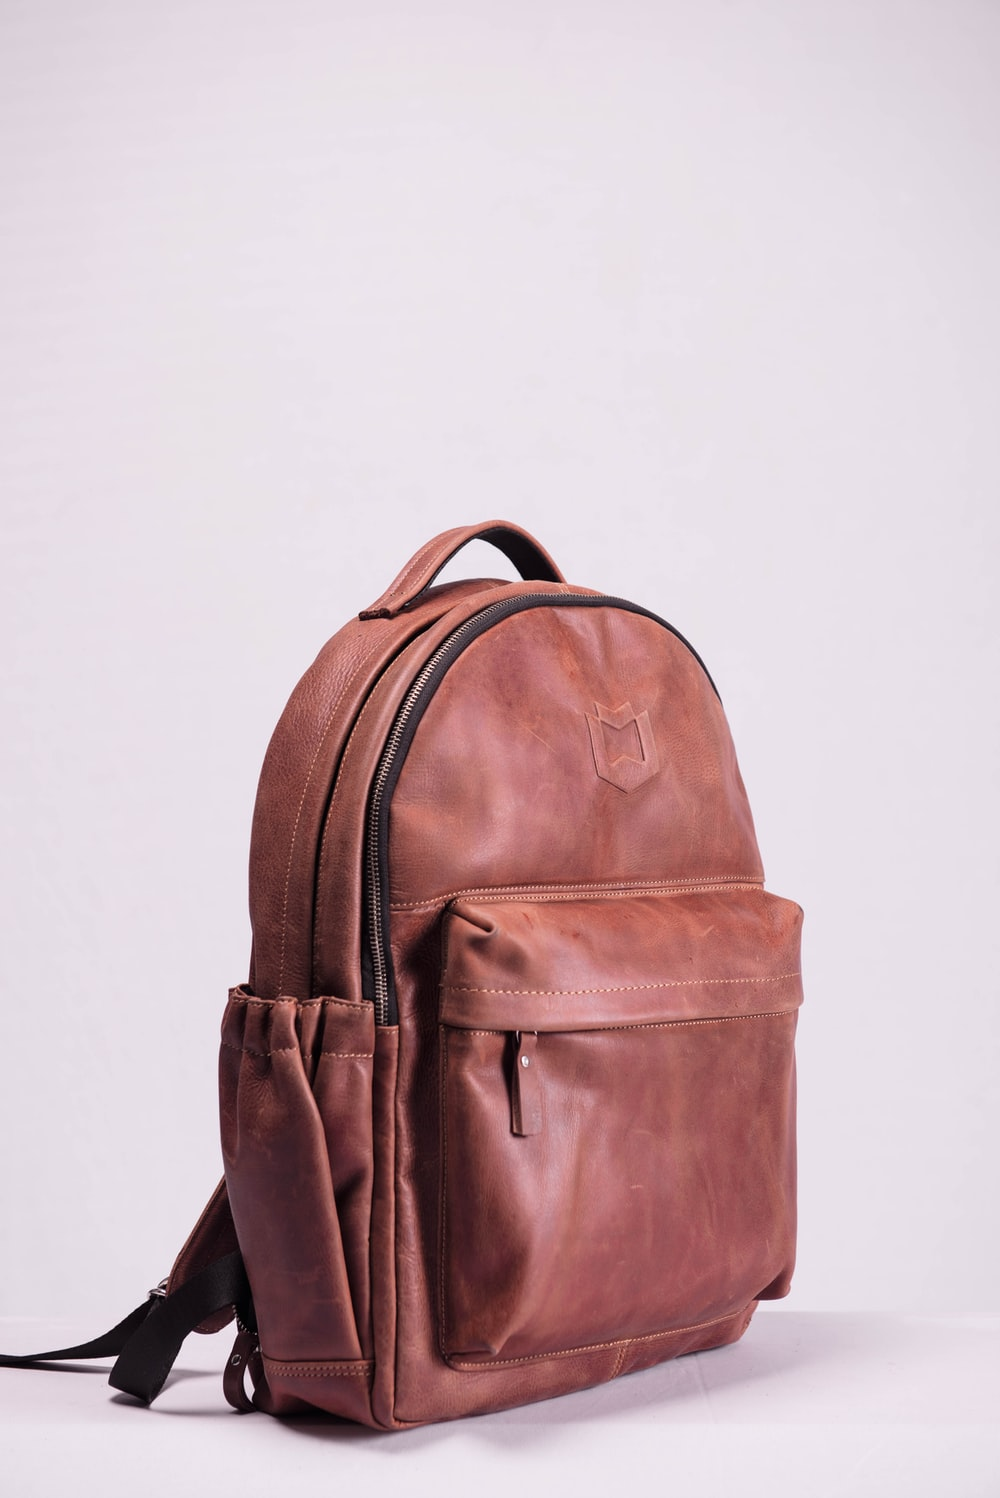 brown leather backpack on white wall